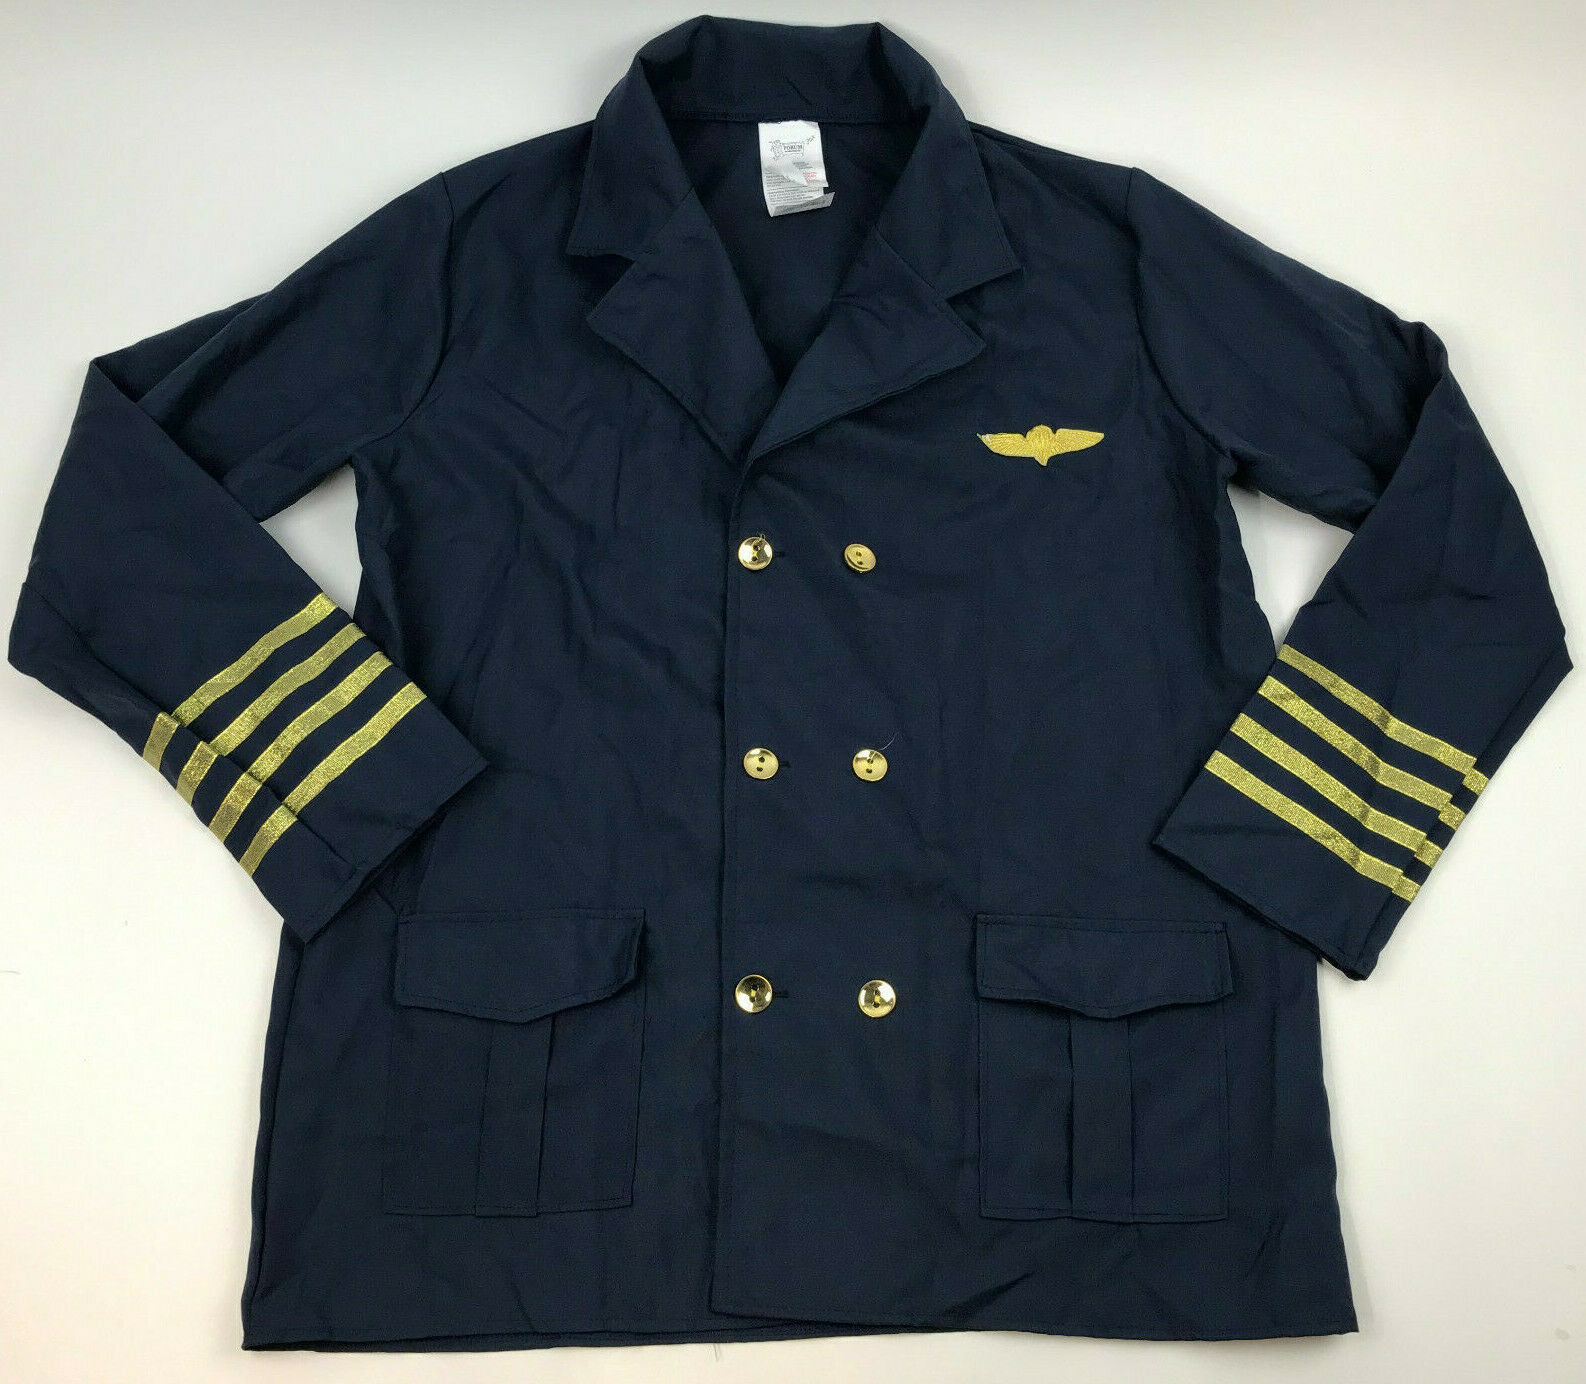 Primary image for FORUM Pilot's UNIFORM Costume JACKET Men's NAVY Blue GOLD Standard Size AIRPLANE